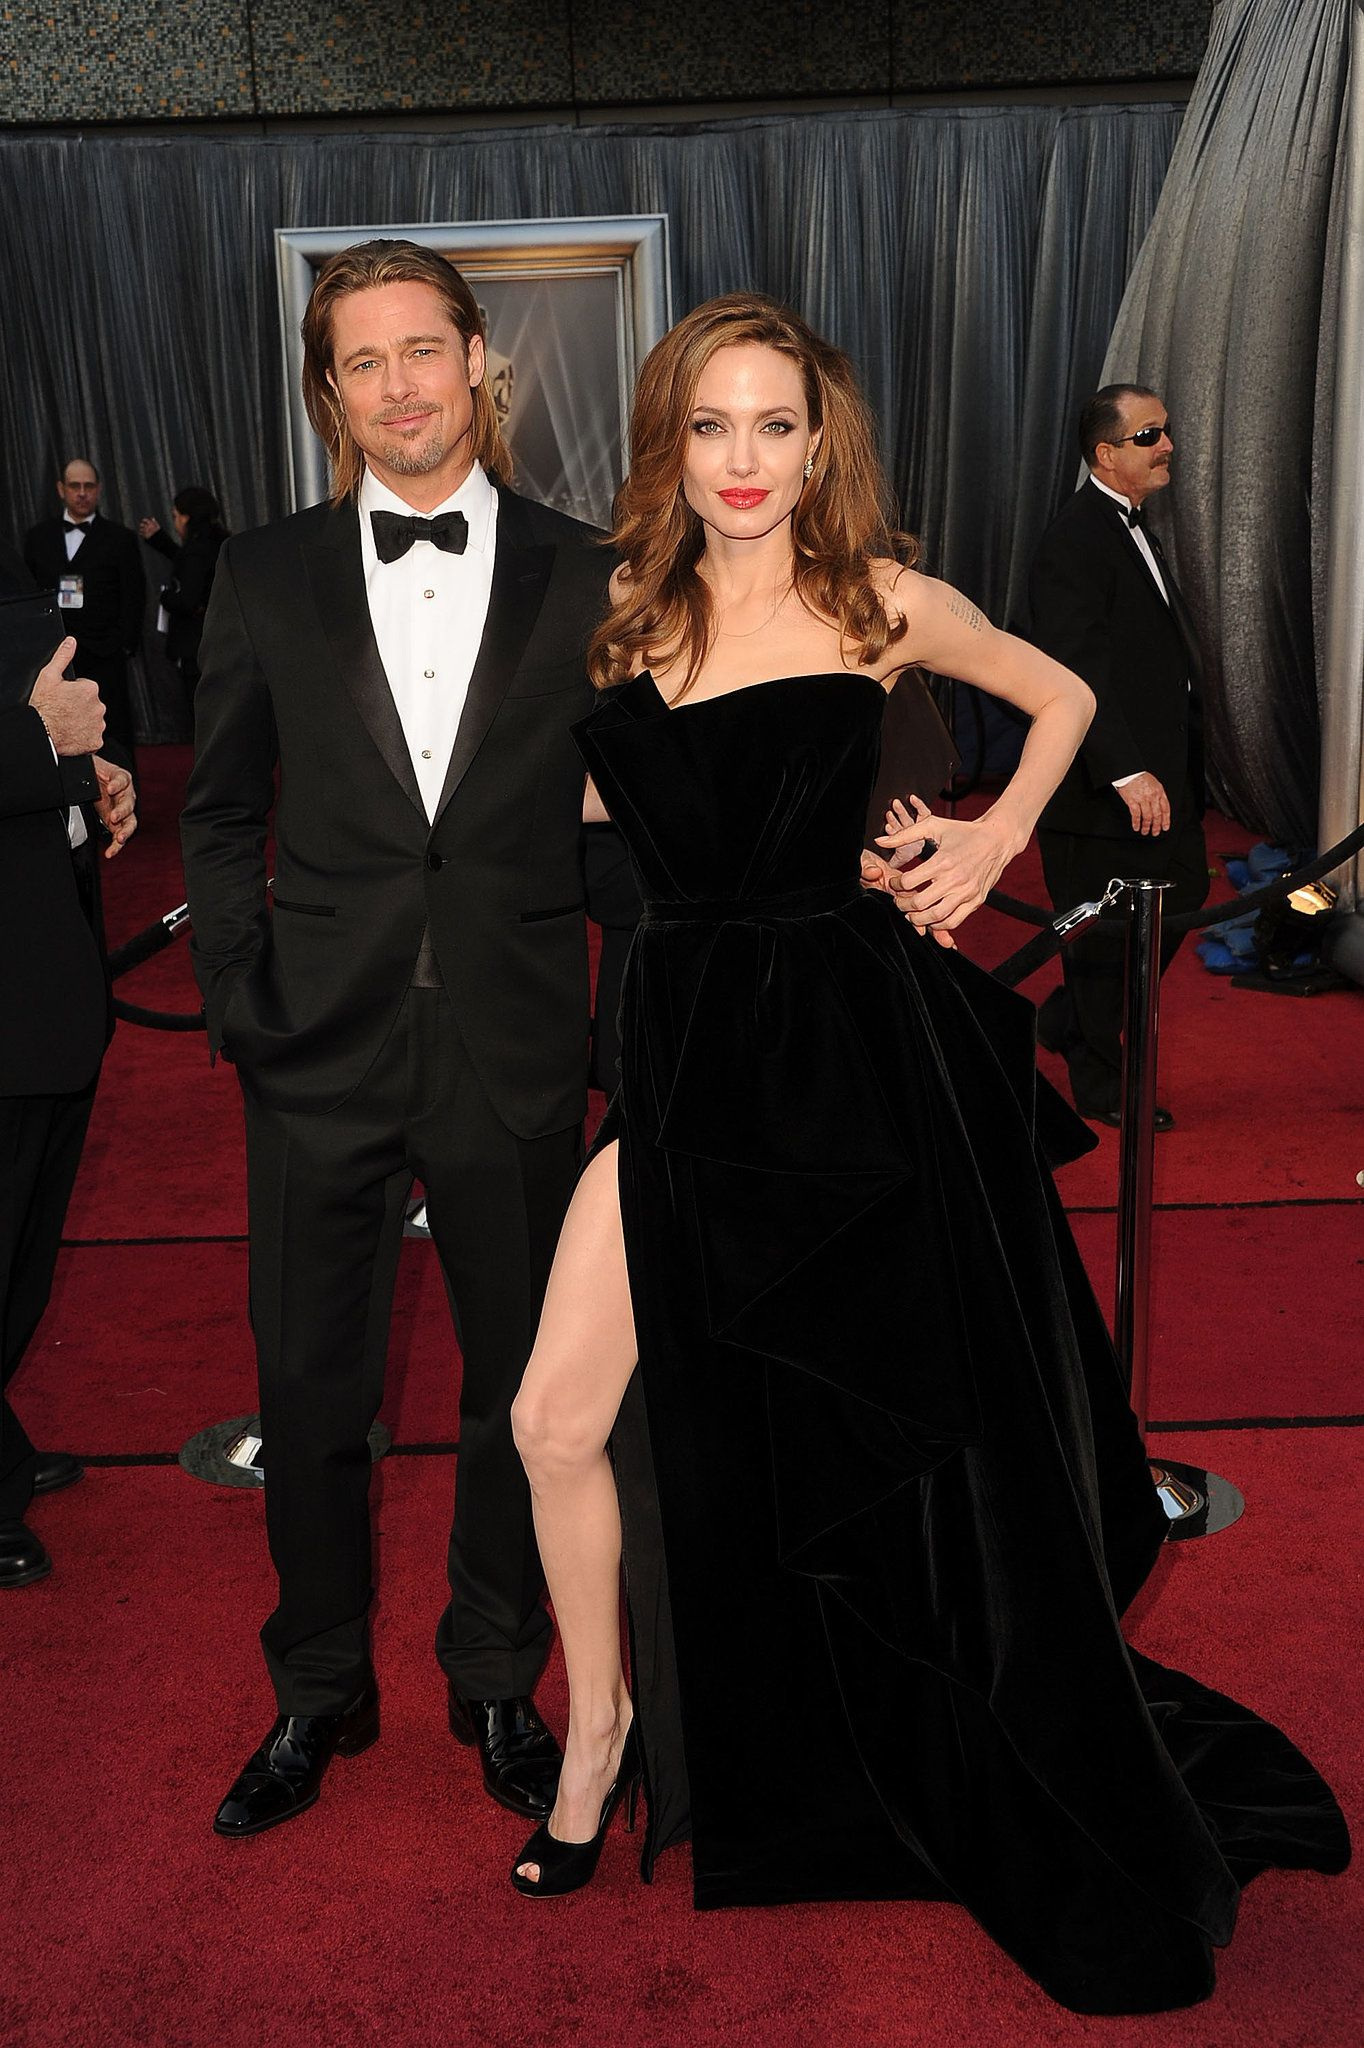 Angelina Jolie Showed Off Her Now Infamous Leg On The Red Carpet With Revisit Iconic Oscars Moments From The Past Brad Pitt And Angelina Jolie Brad And Angelina Strapless Dress Formal